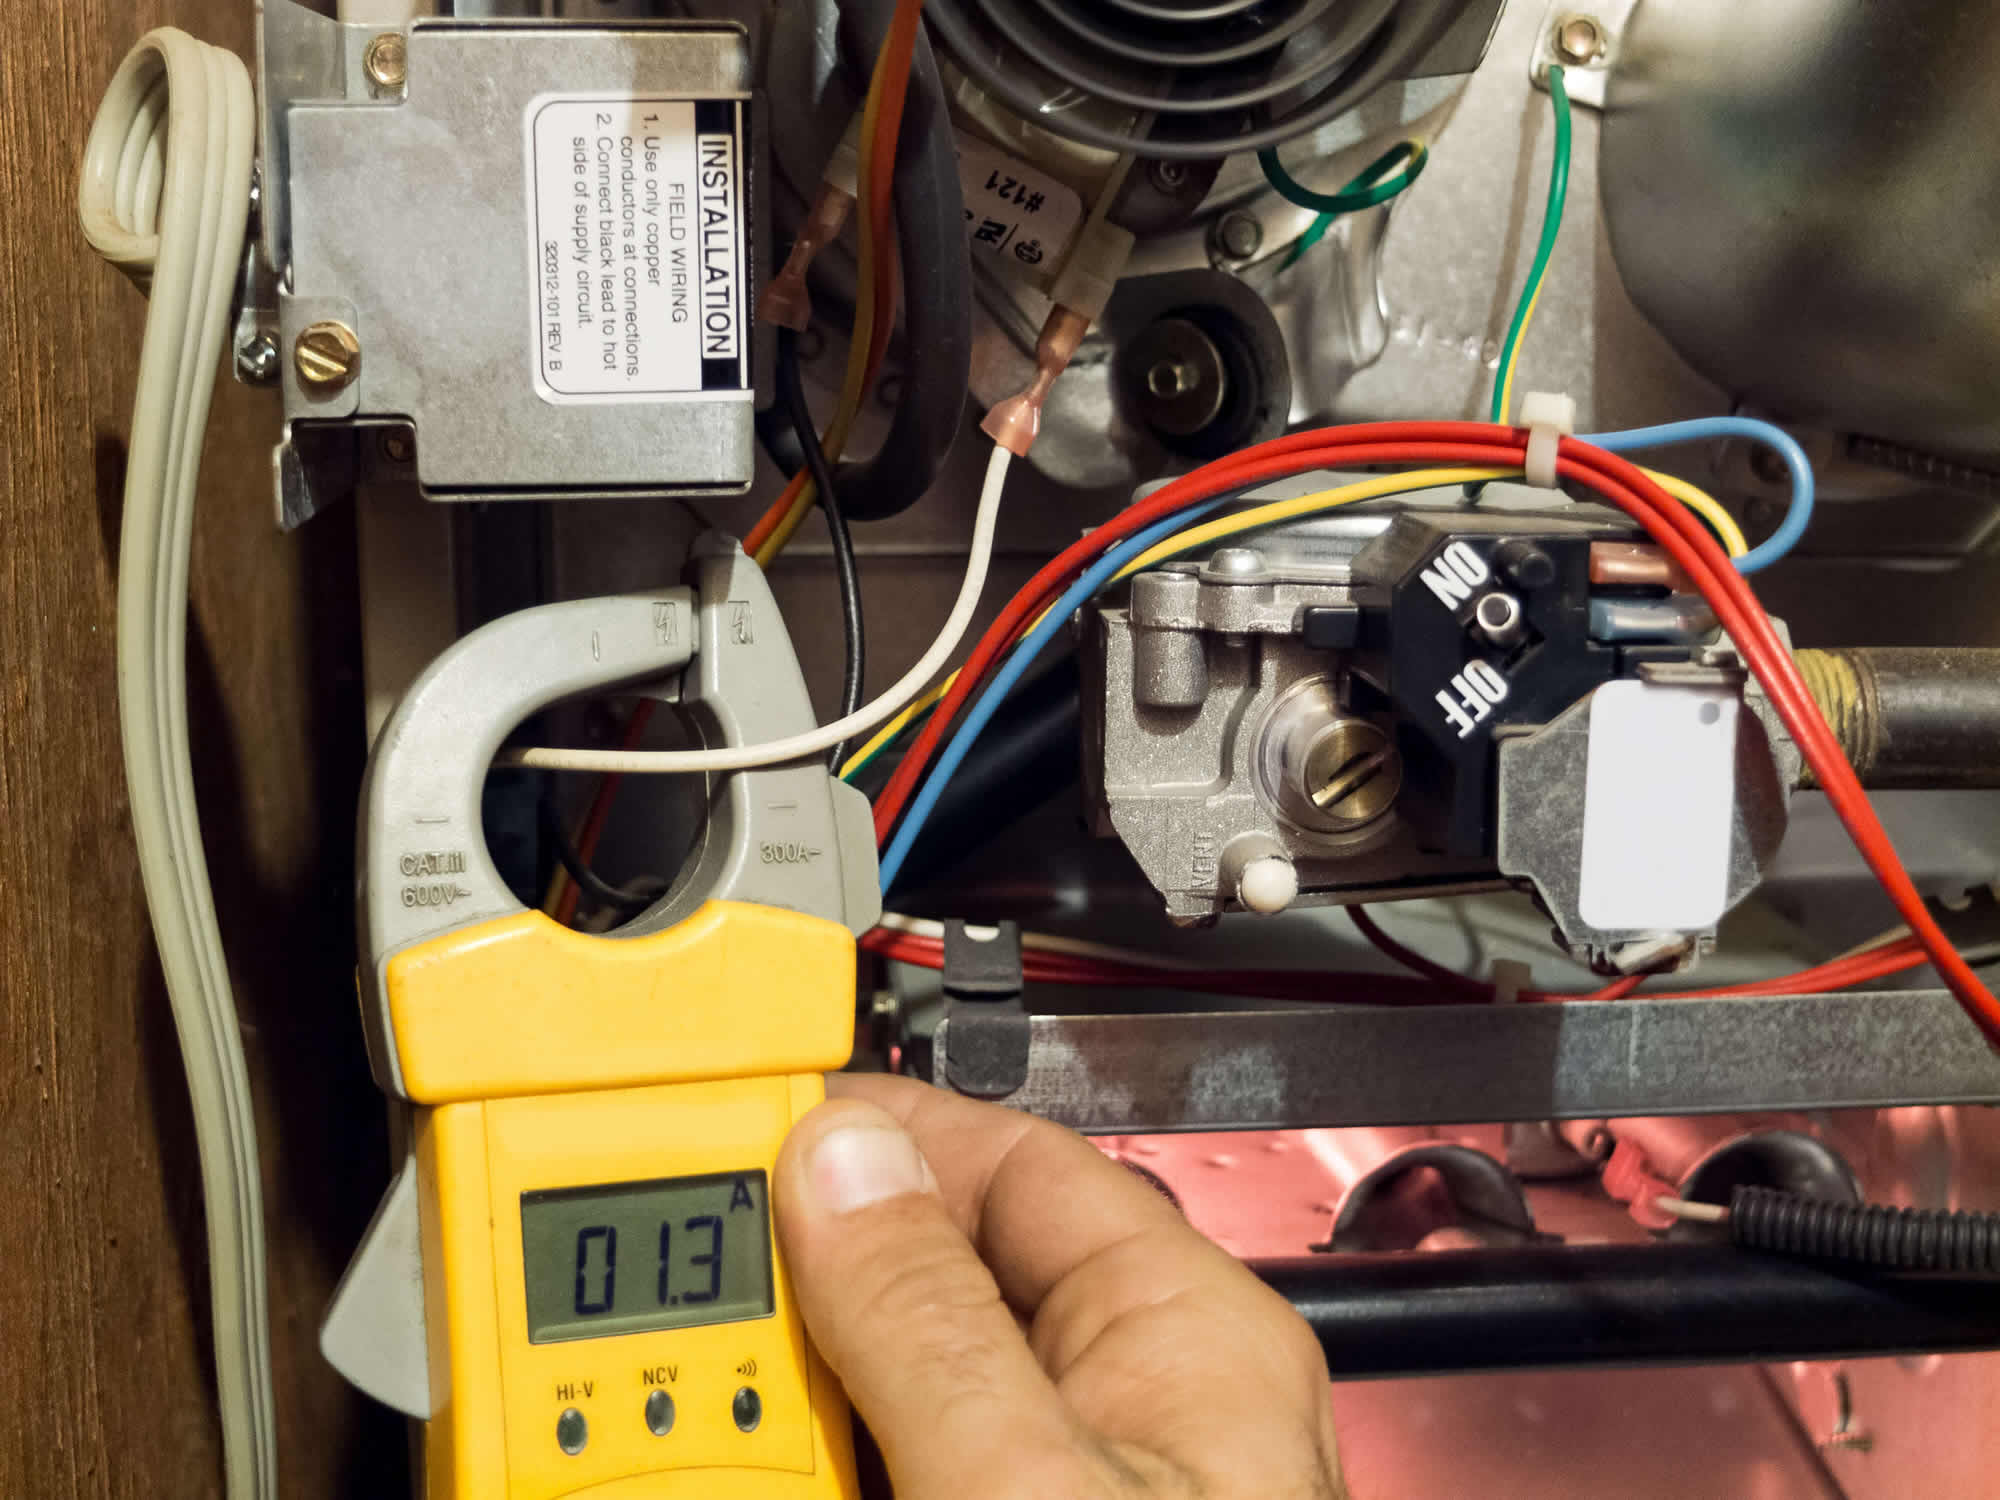 We are commitment to providing you with the best service and repair on your heating system.